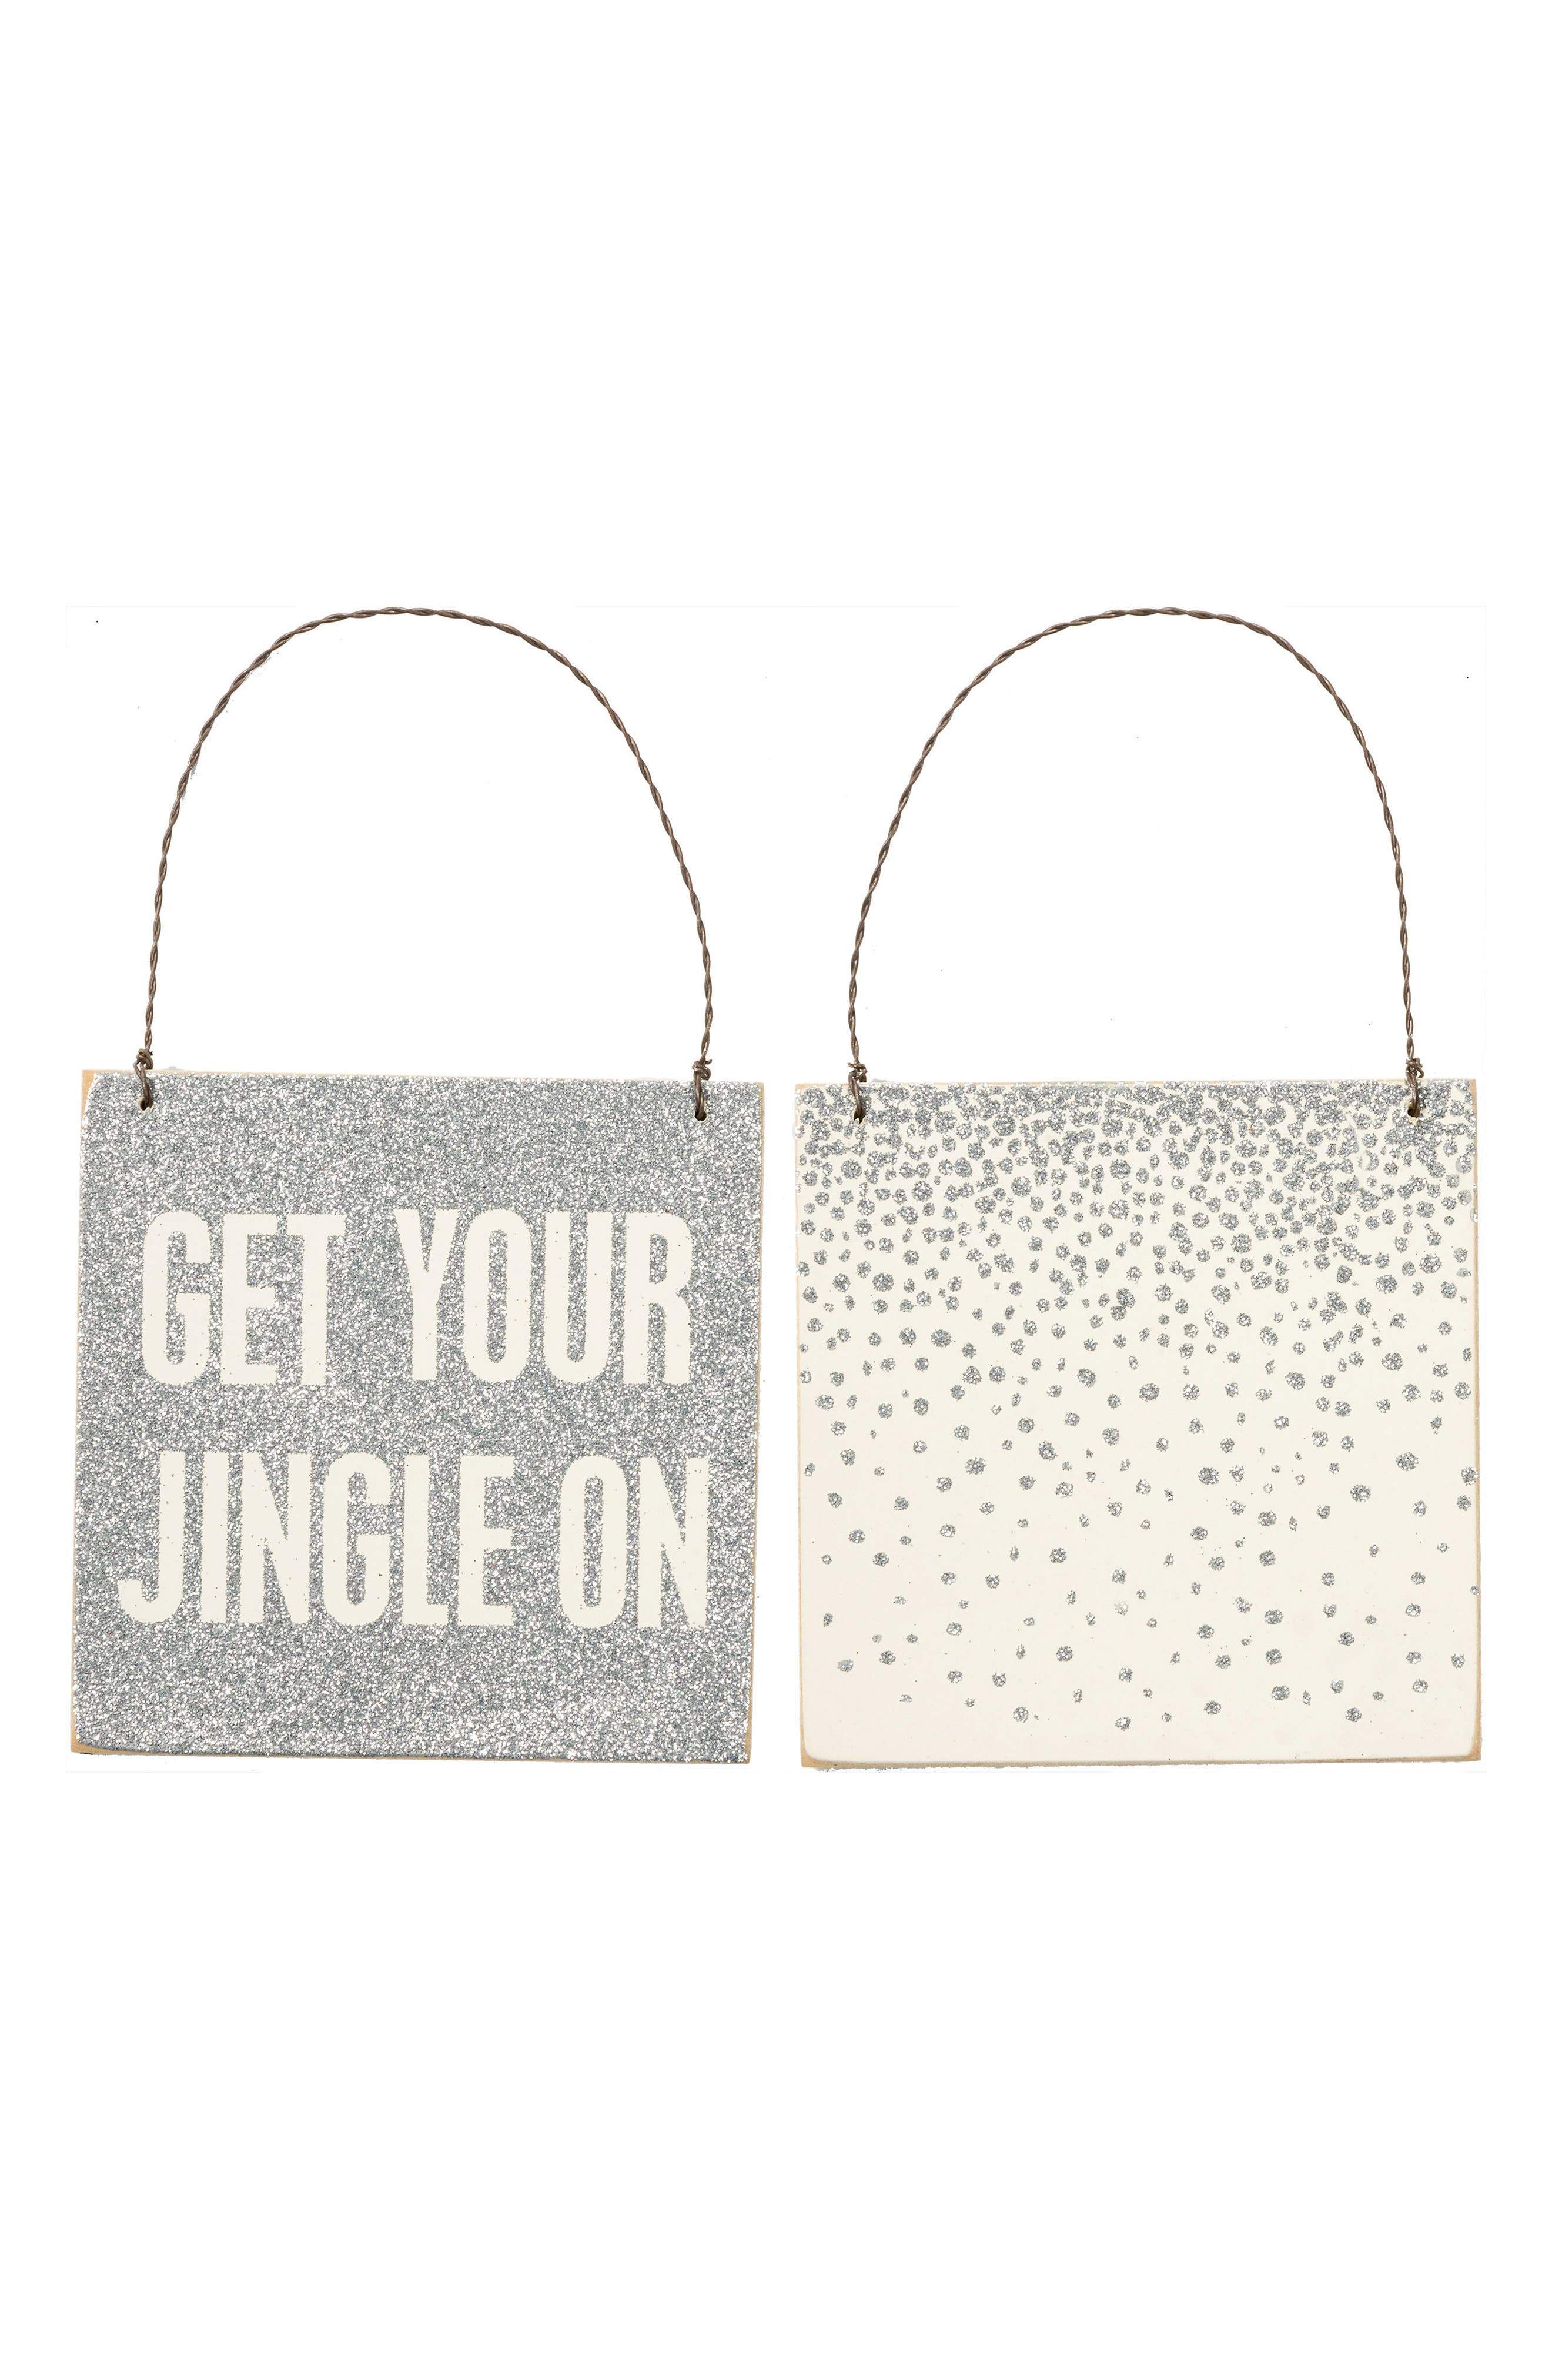 Get Your Jingle On Ornament,                         Main,                         color, 020